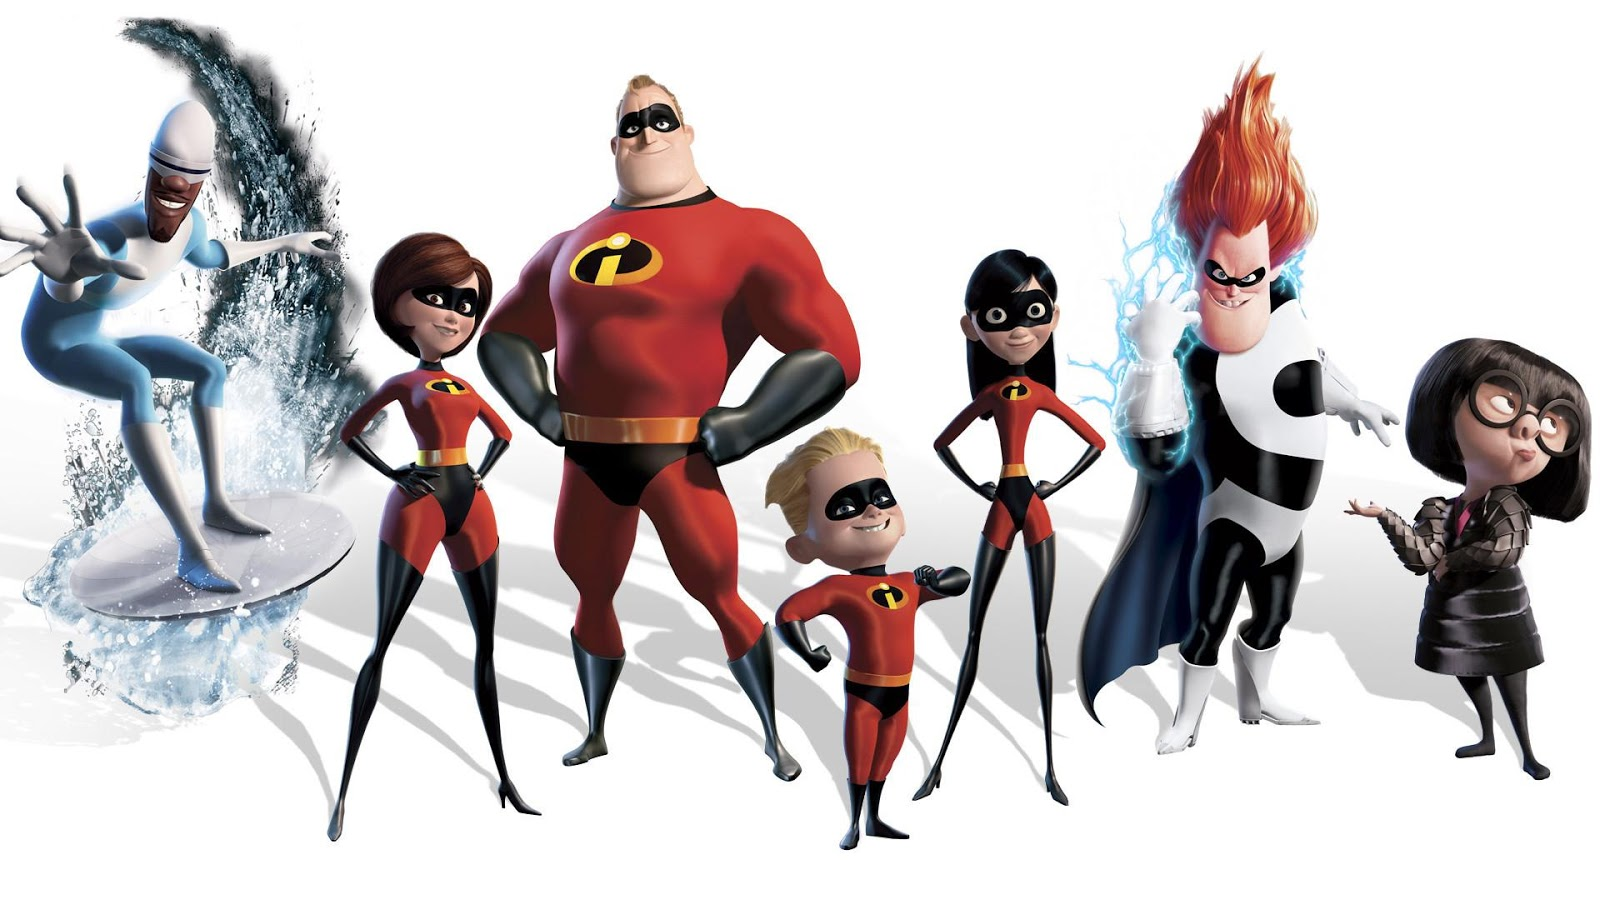 The Incredibles family posing with the villains